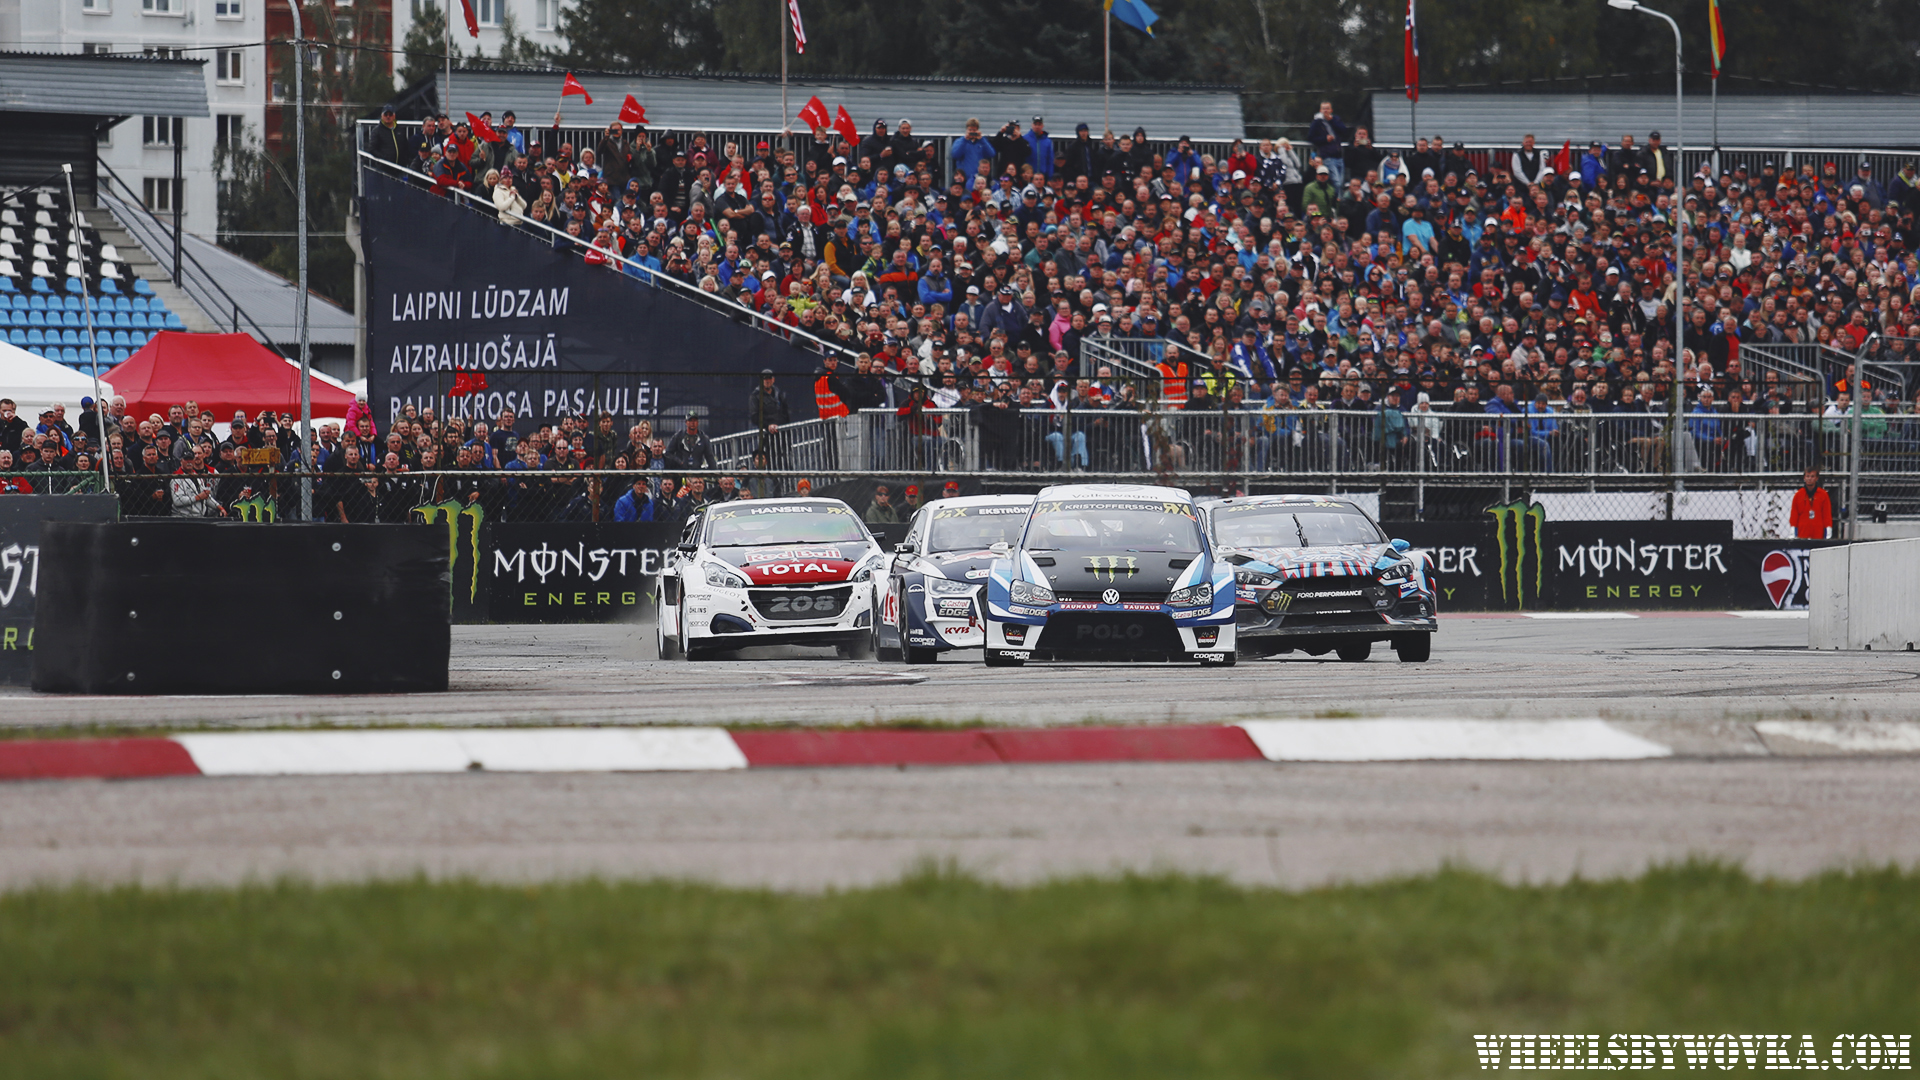 world-rx-of-latvia-by-wheelsbywovka-53